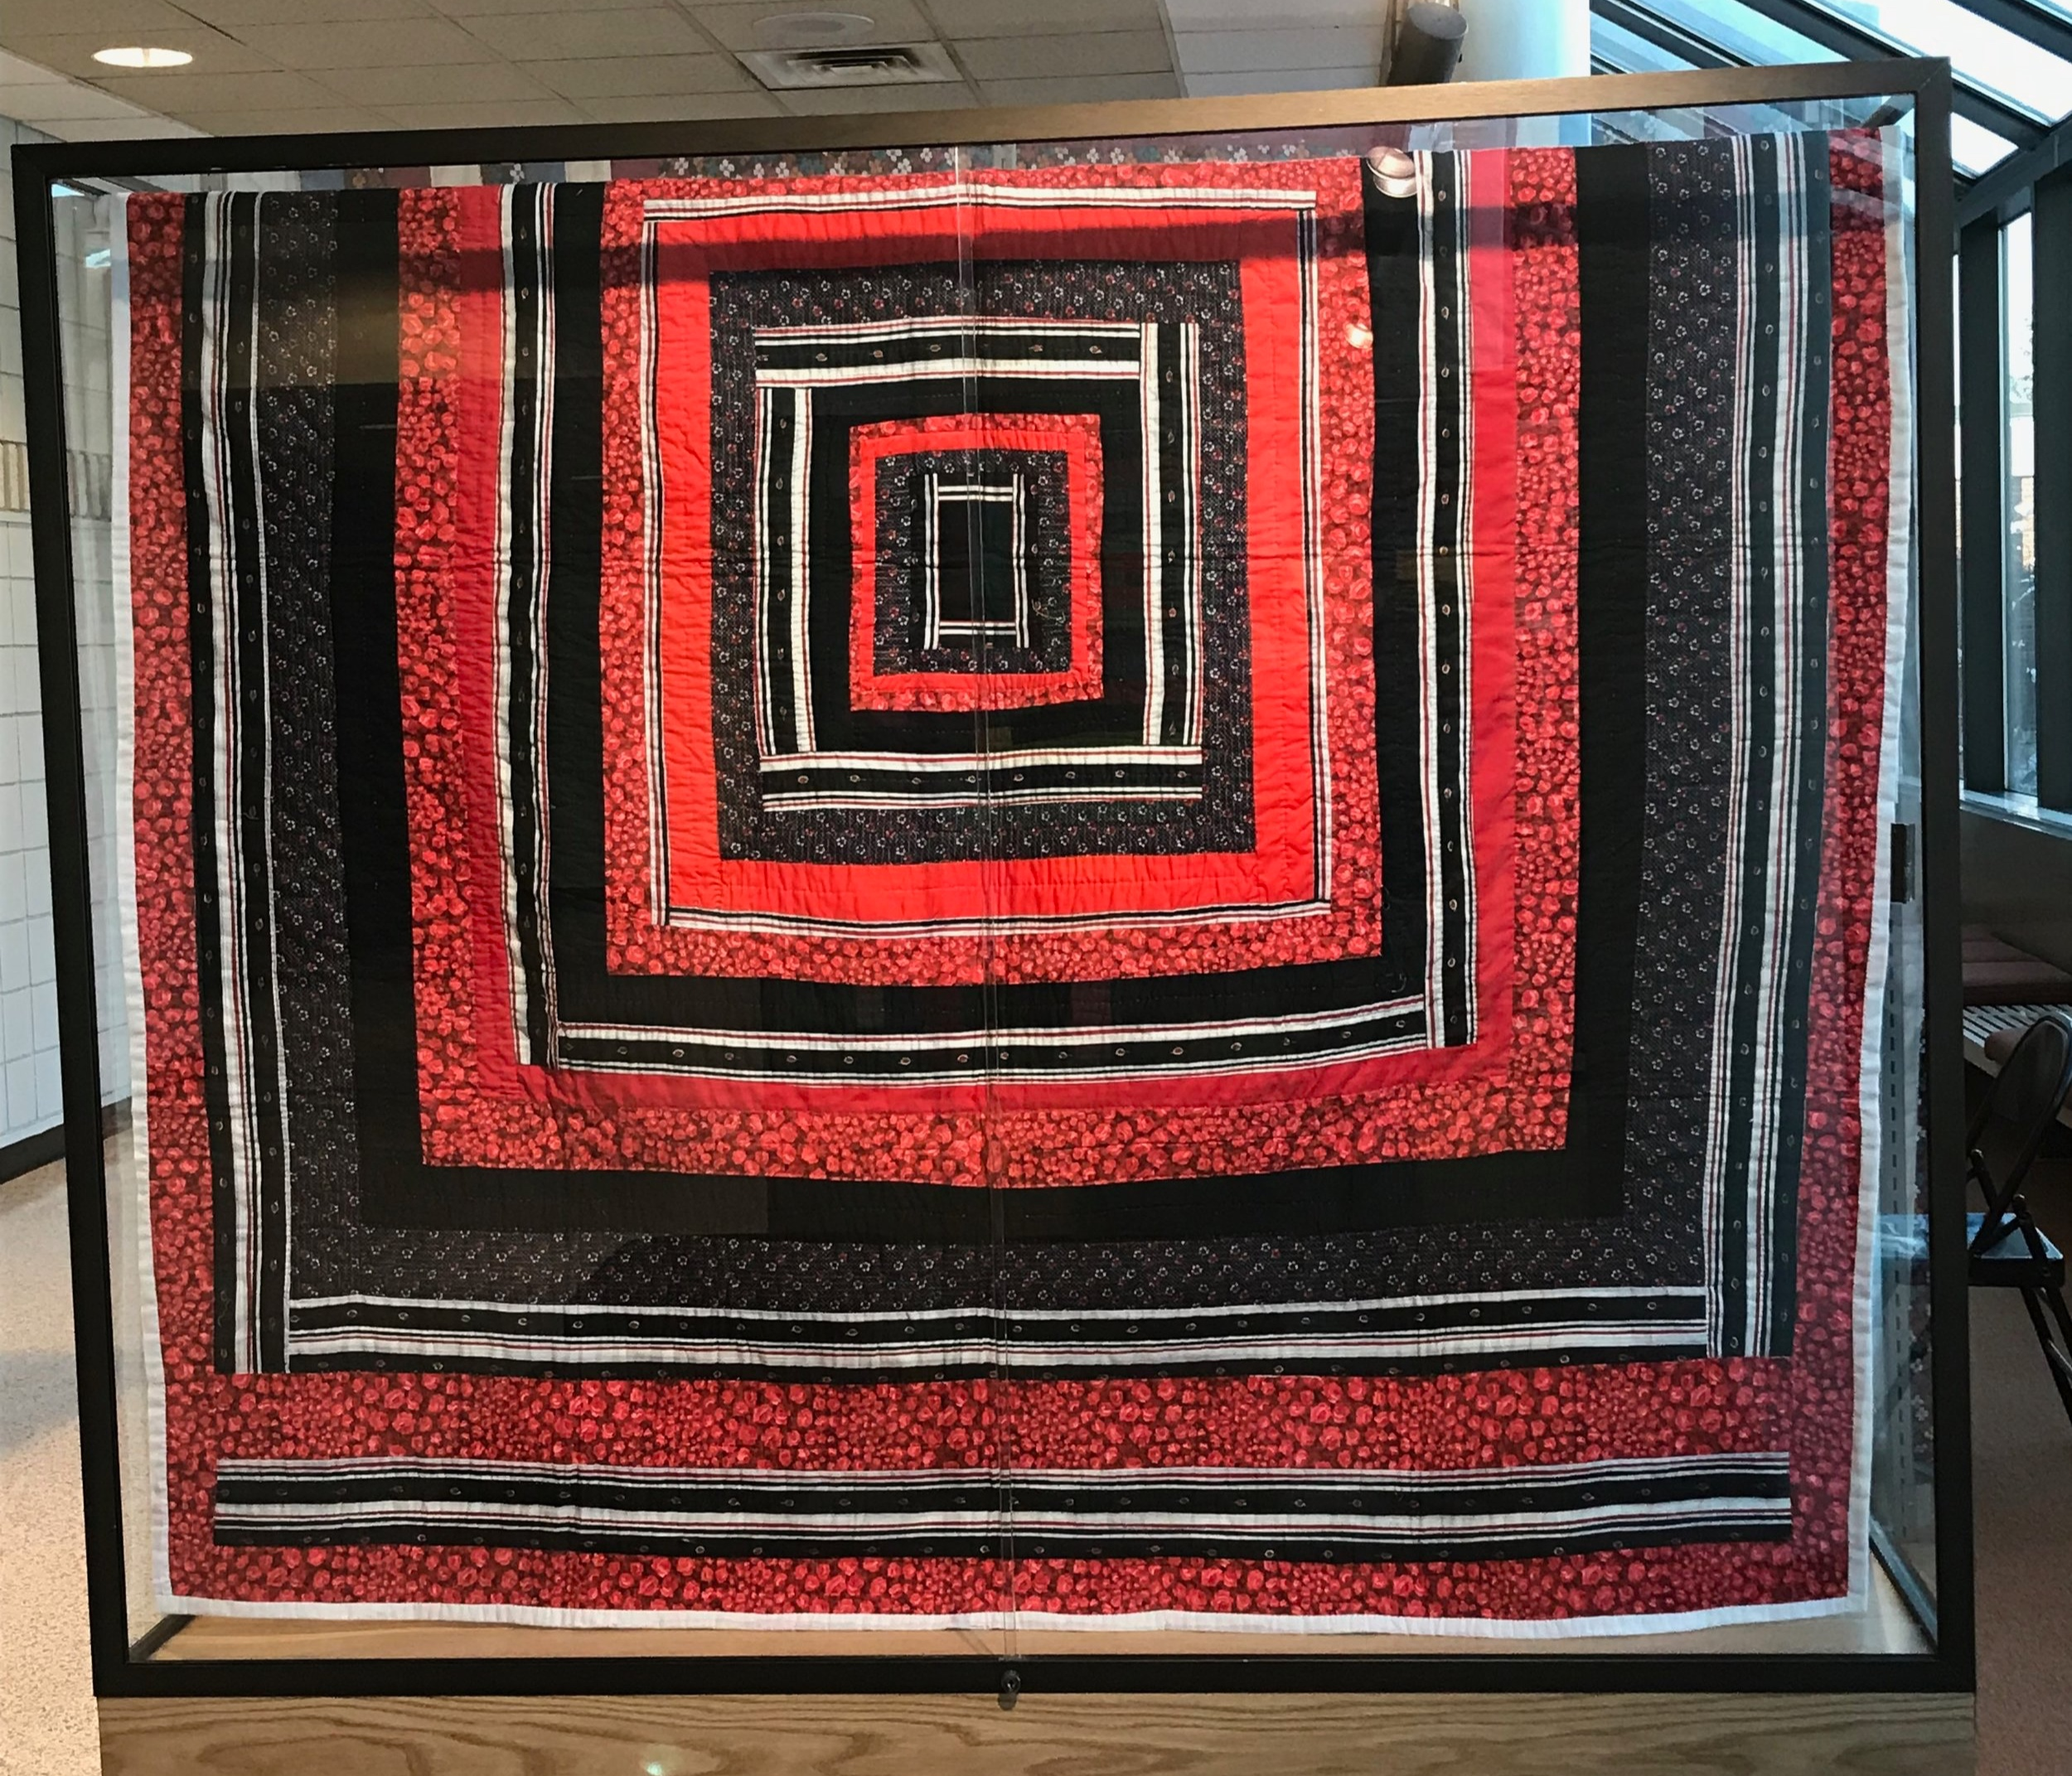 A beautiful Gee's Bend quilt currently on exhibition at Madonna University, Livonia MI